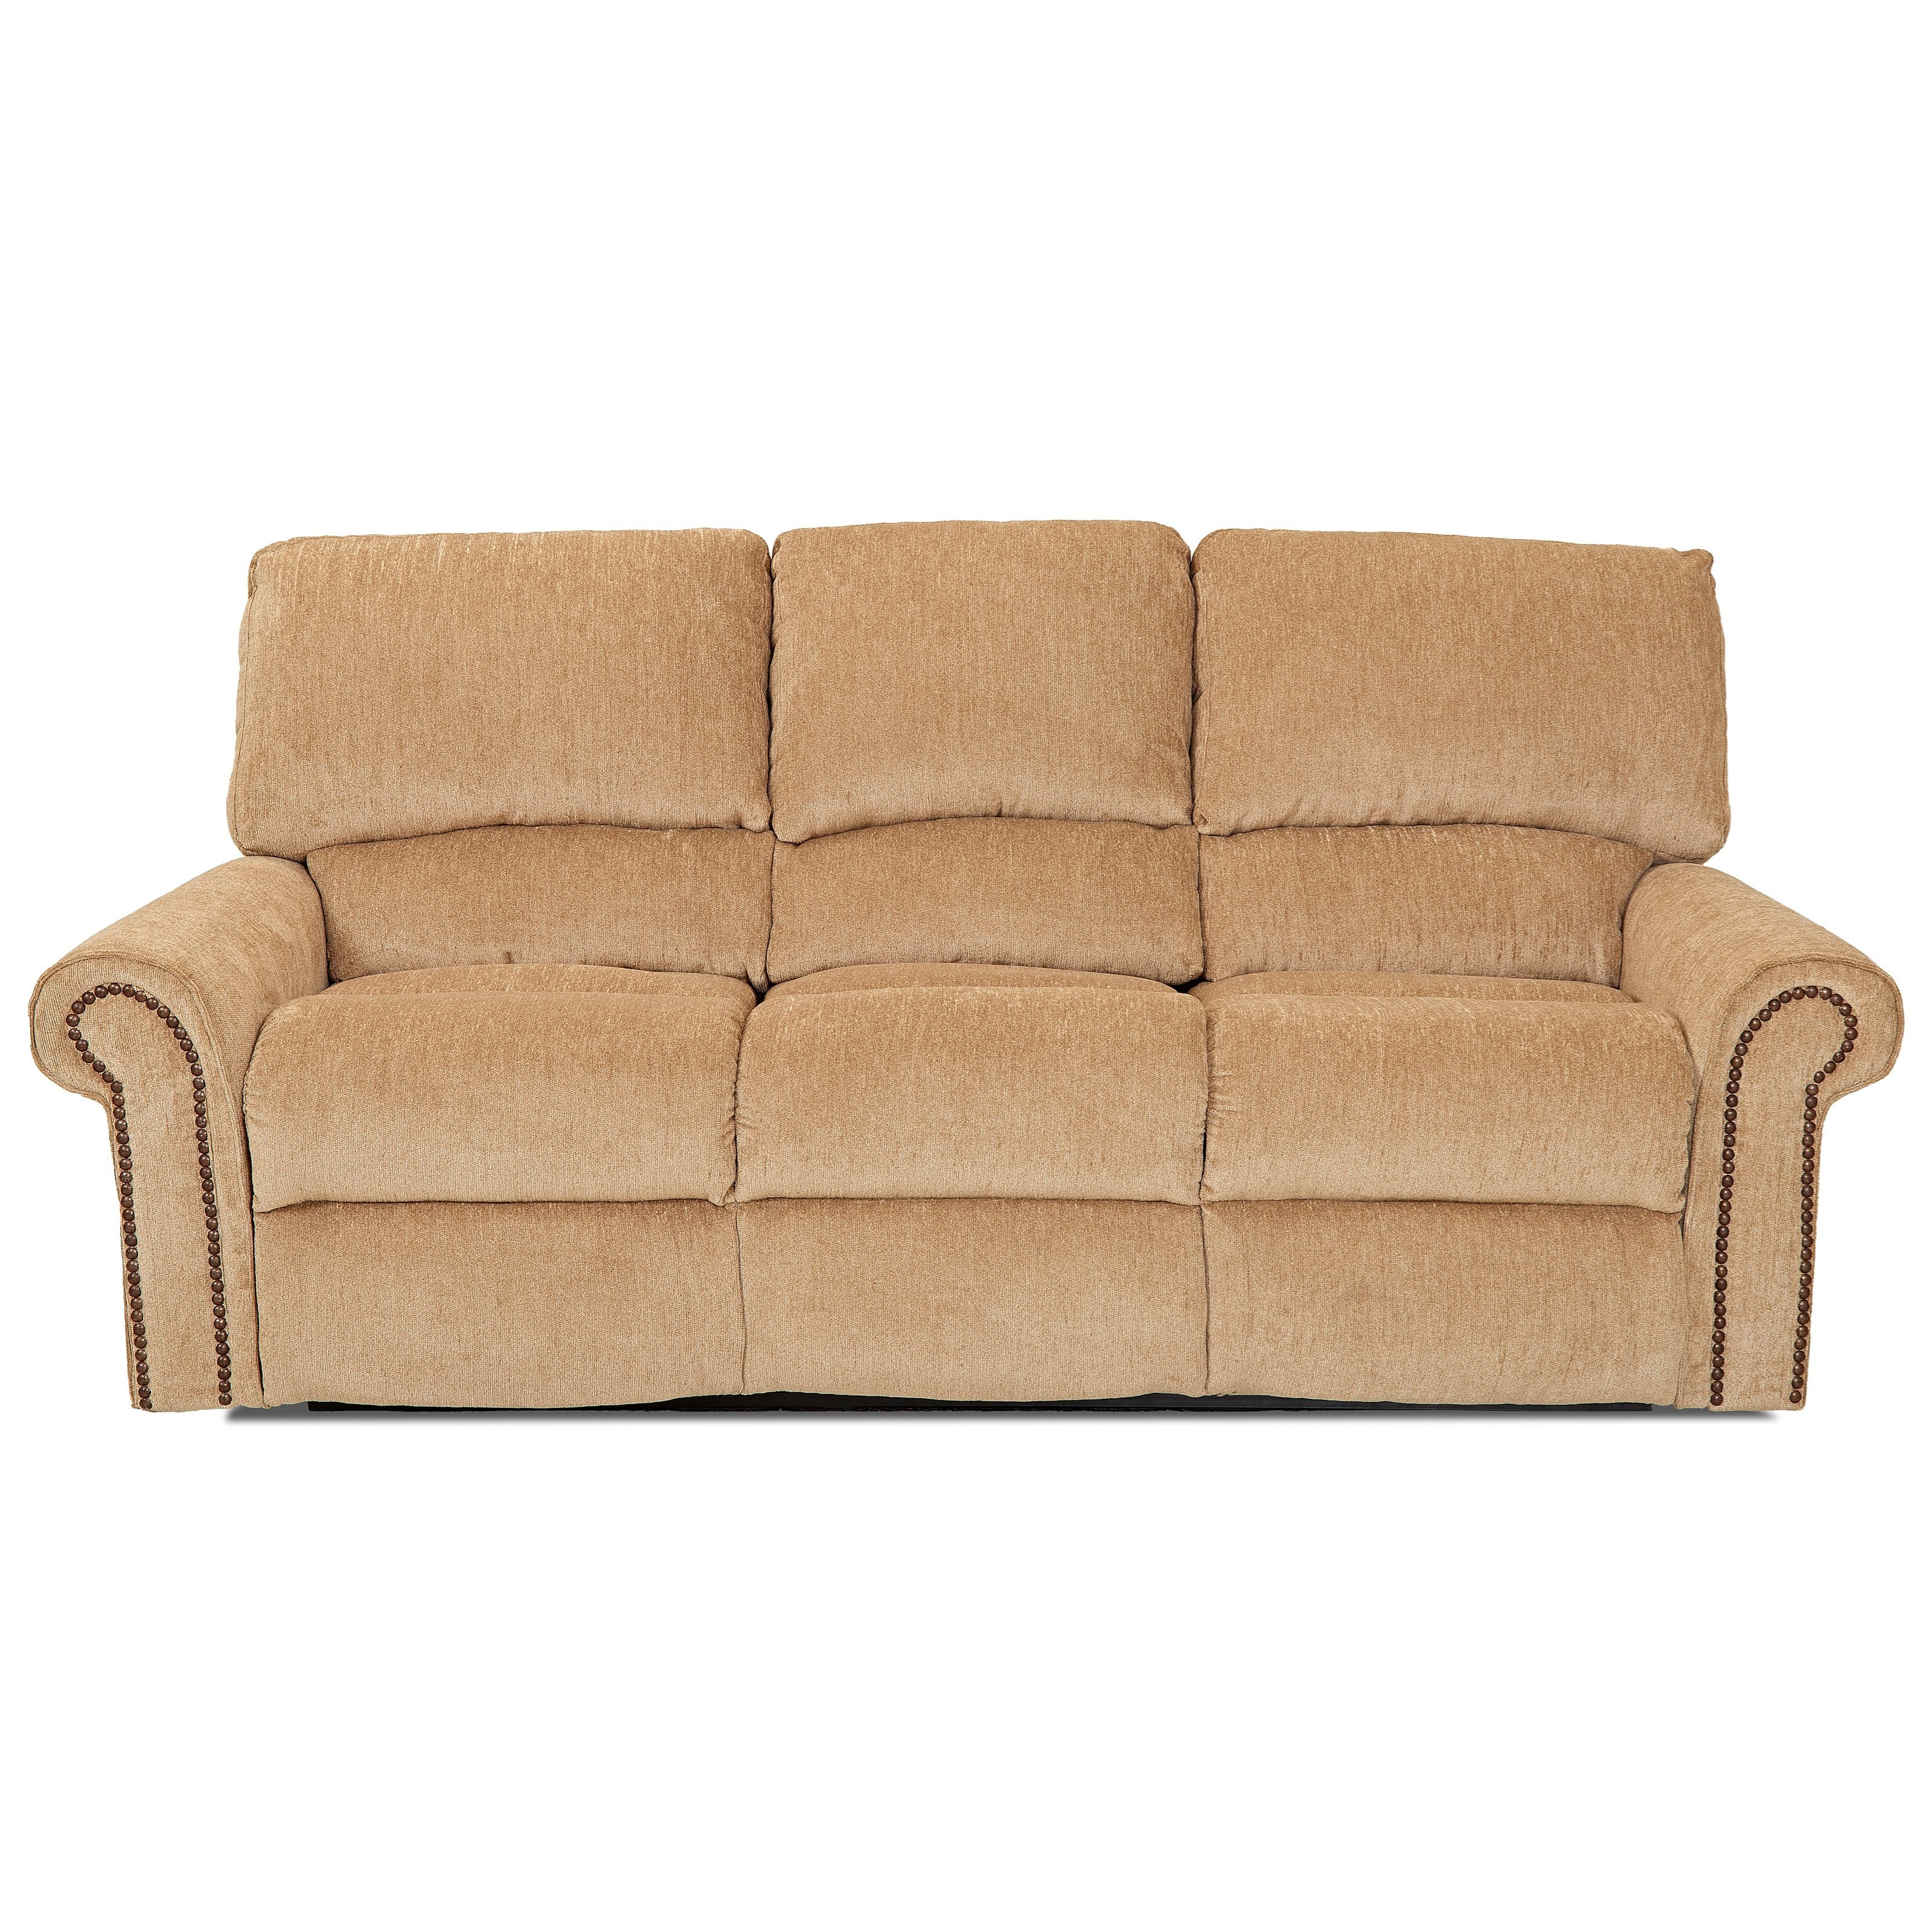 Klaussner Savannah Reclining Sofa With Rolled Arms And Nailheads Olinde 39 S Furniture